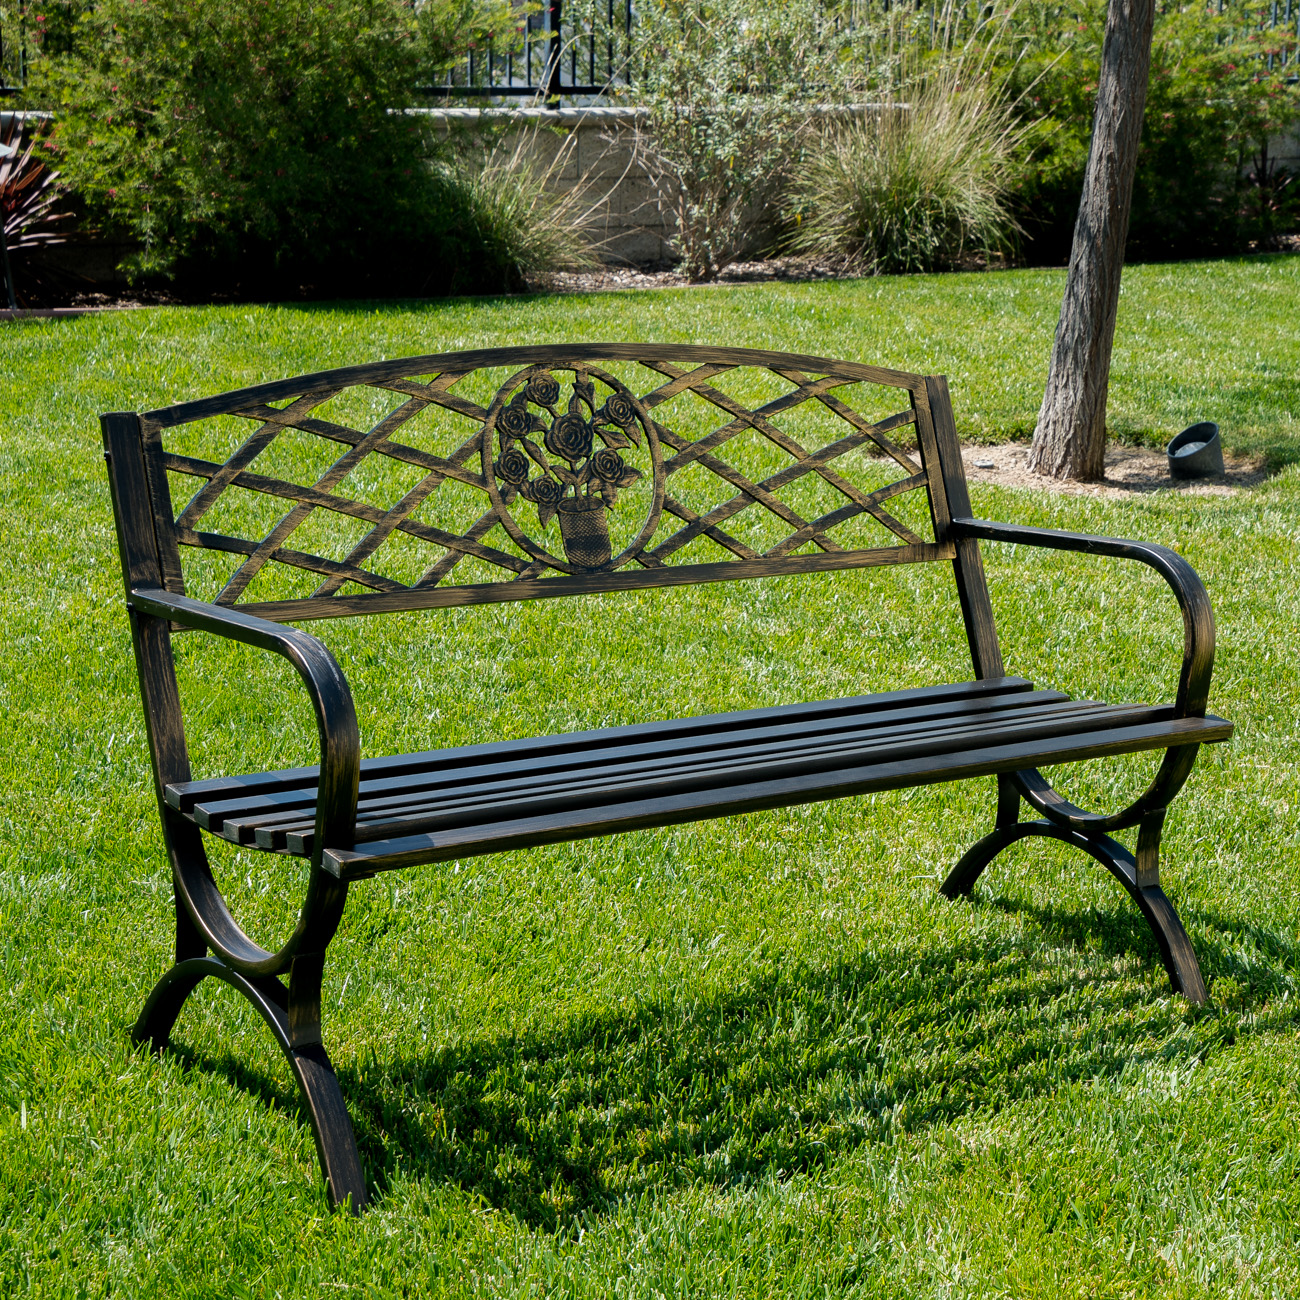 Outdoor bench patio chair metal garden furniture deck for Outdoor furniture benches